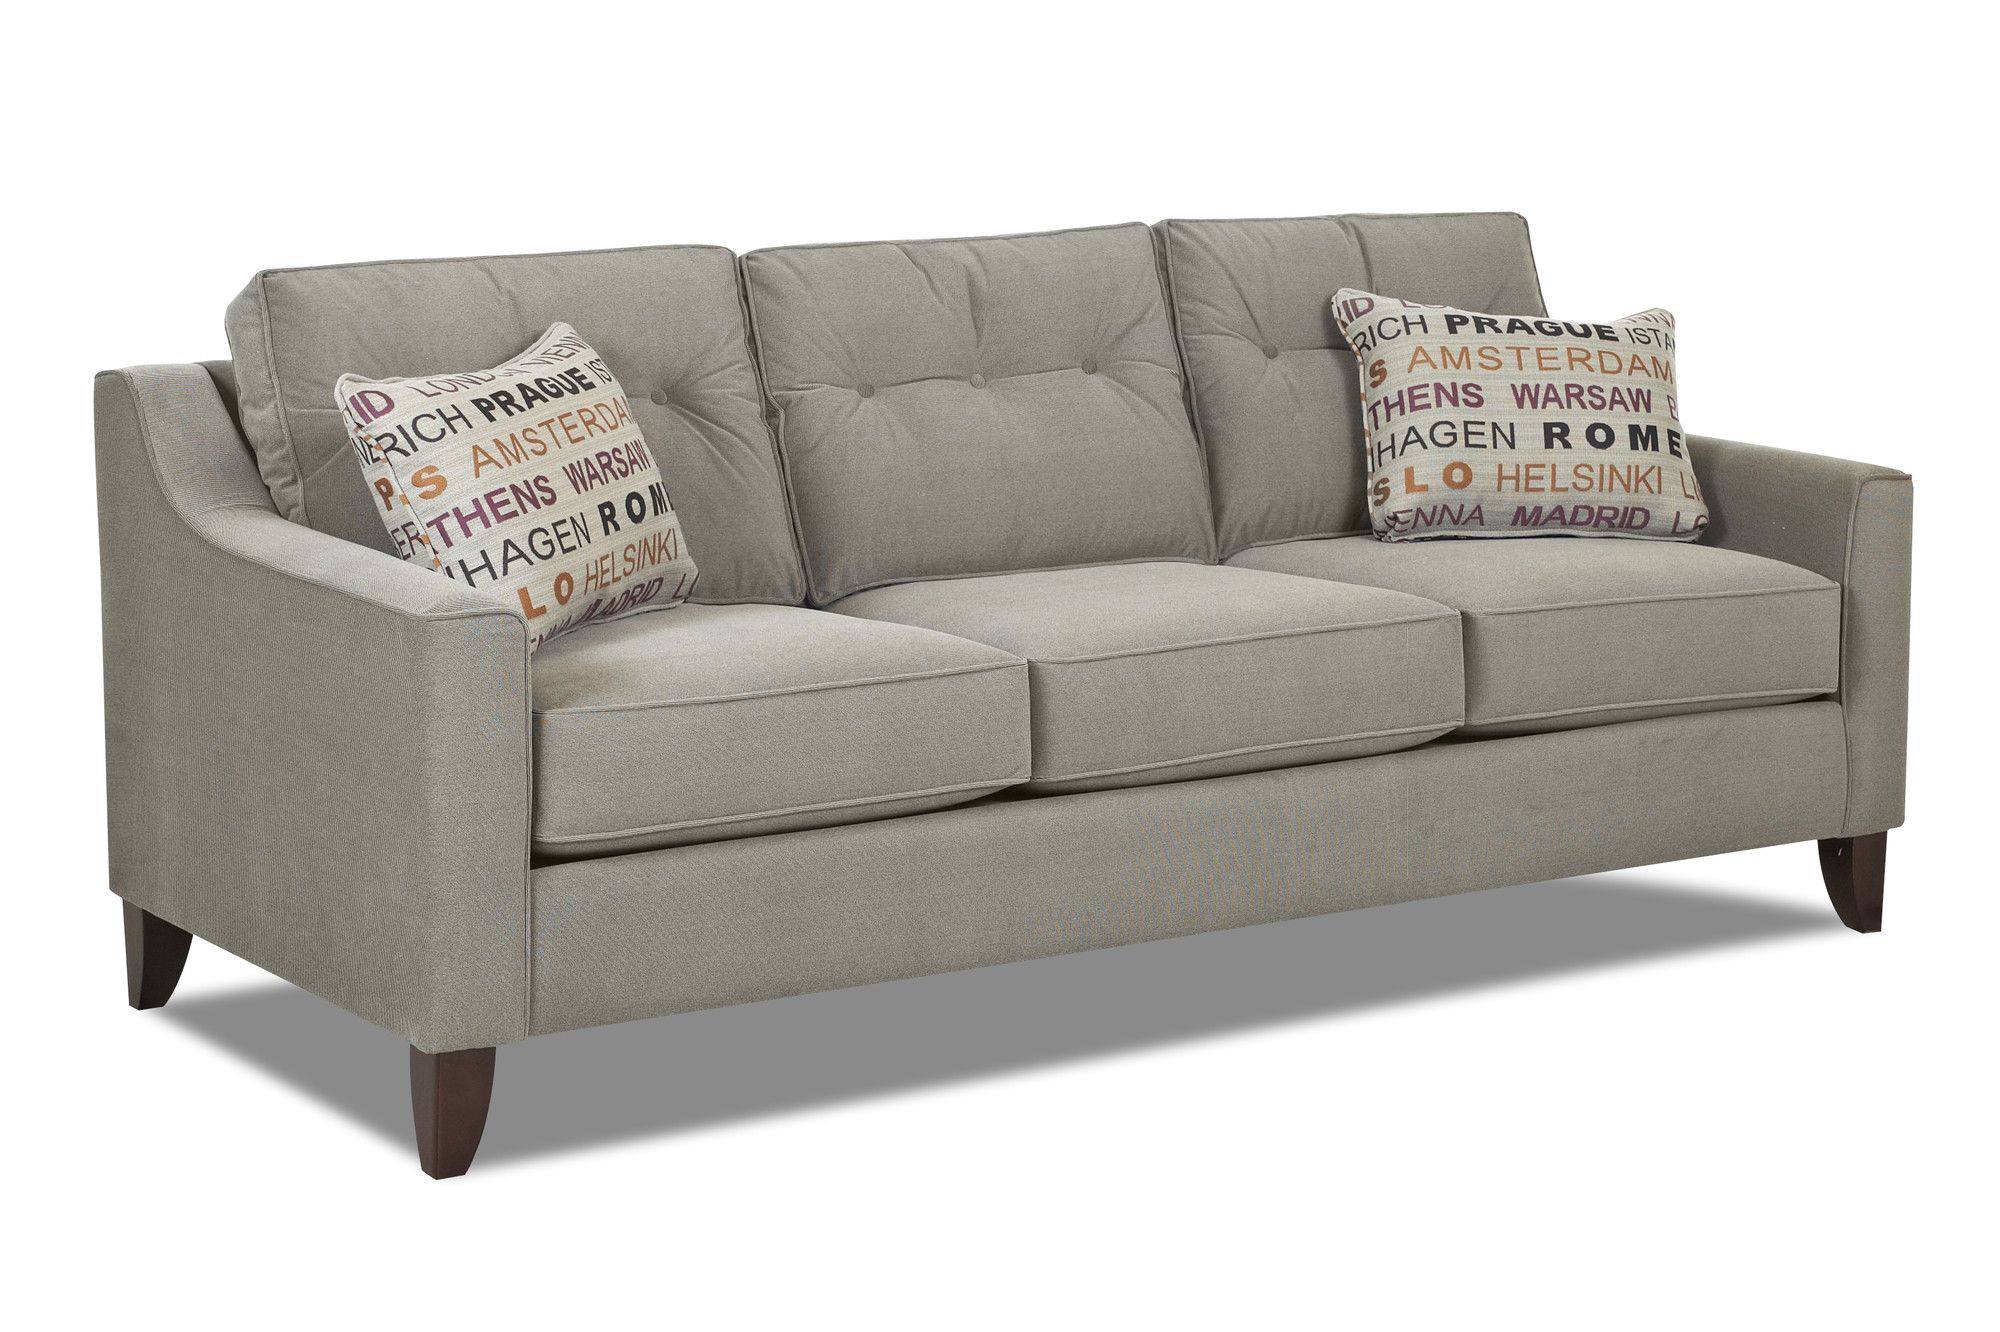 sofa d klaussner wayfair furniture reviews pin audrina sofas m